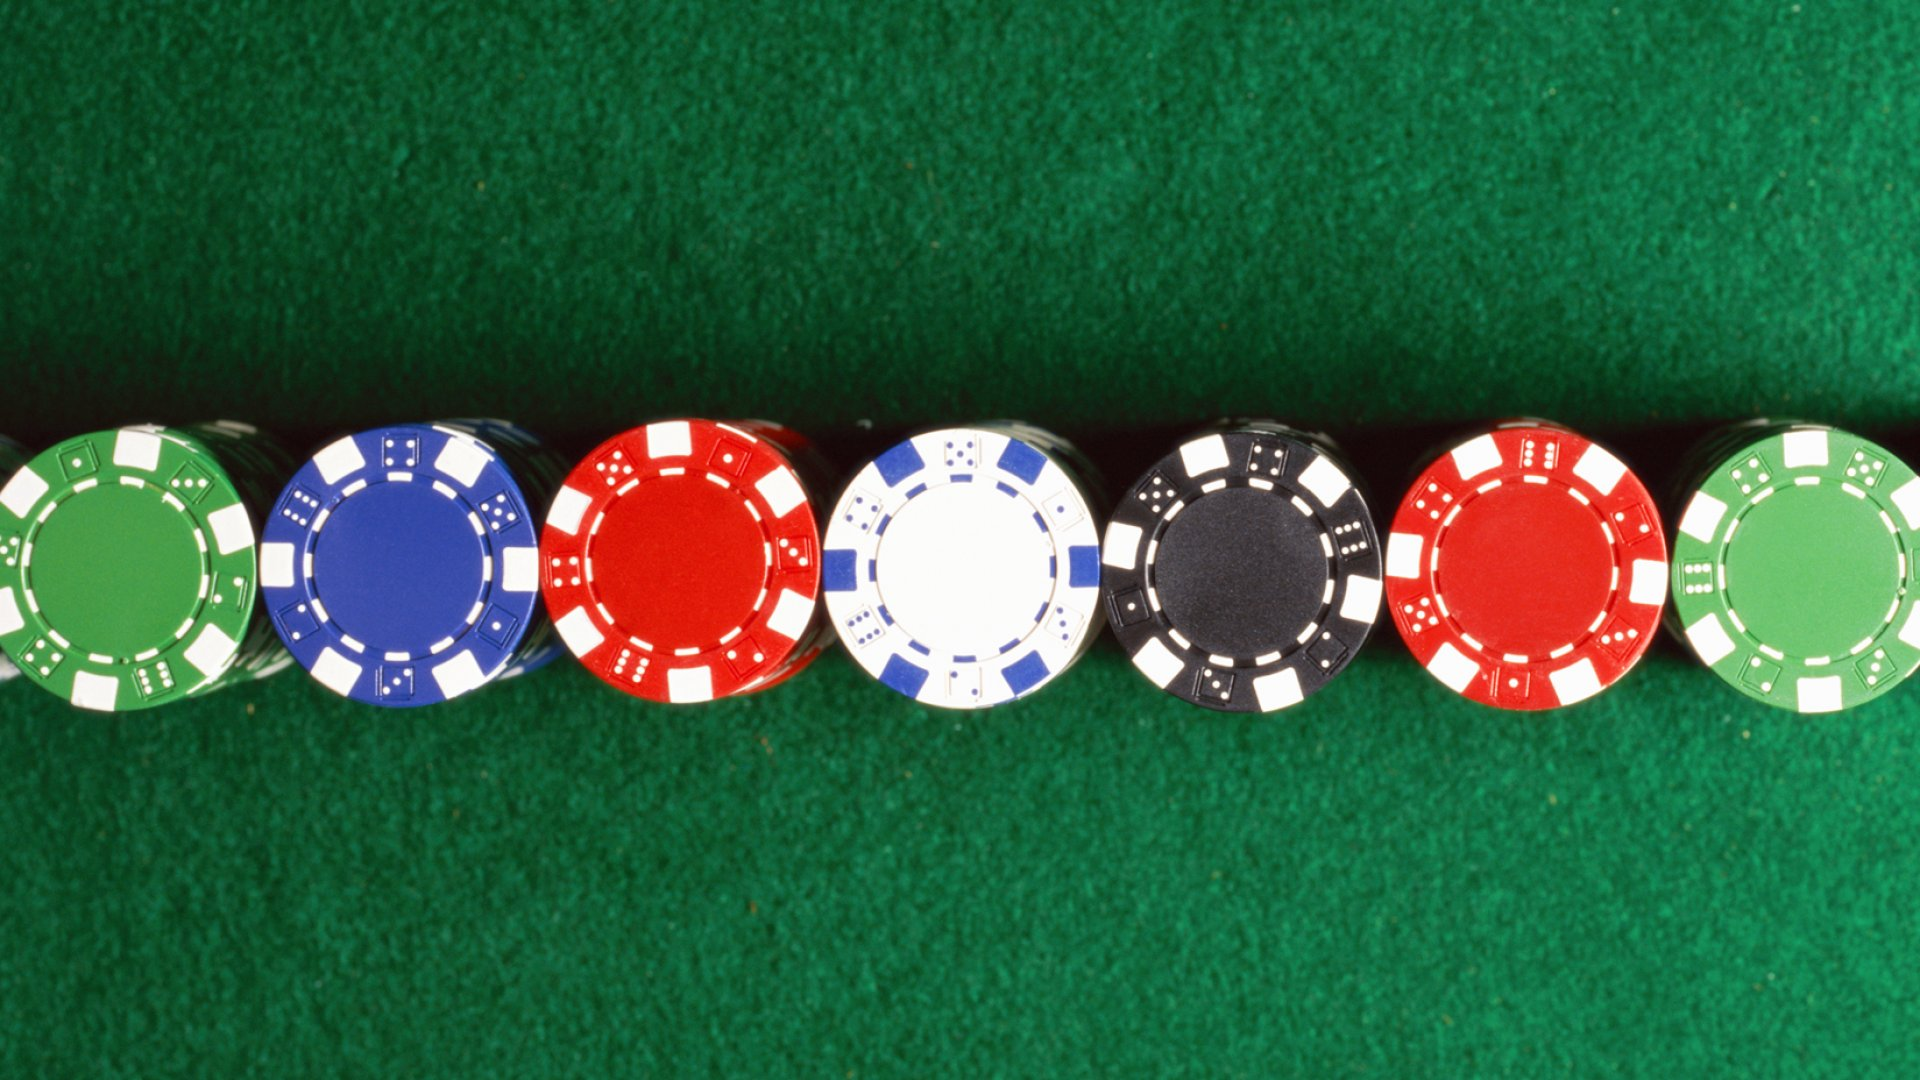 A Robot Just Challenged 5 Professional Poker Players and Won. Here's Why That Matters   Inc.com